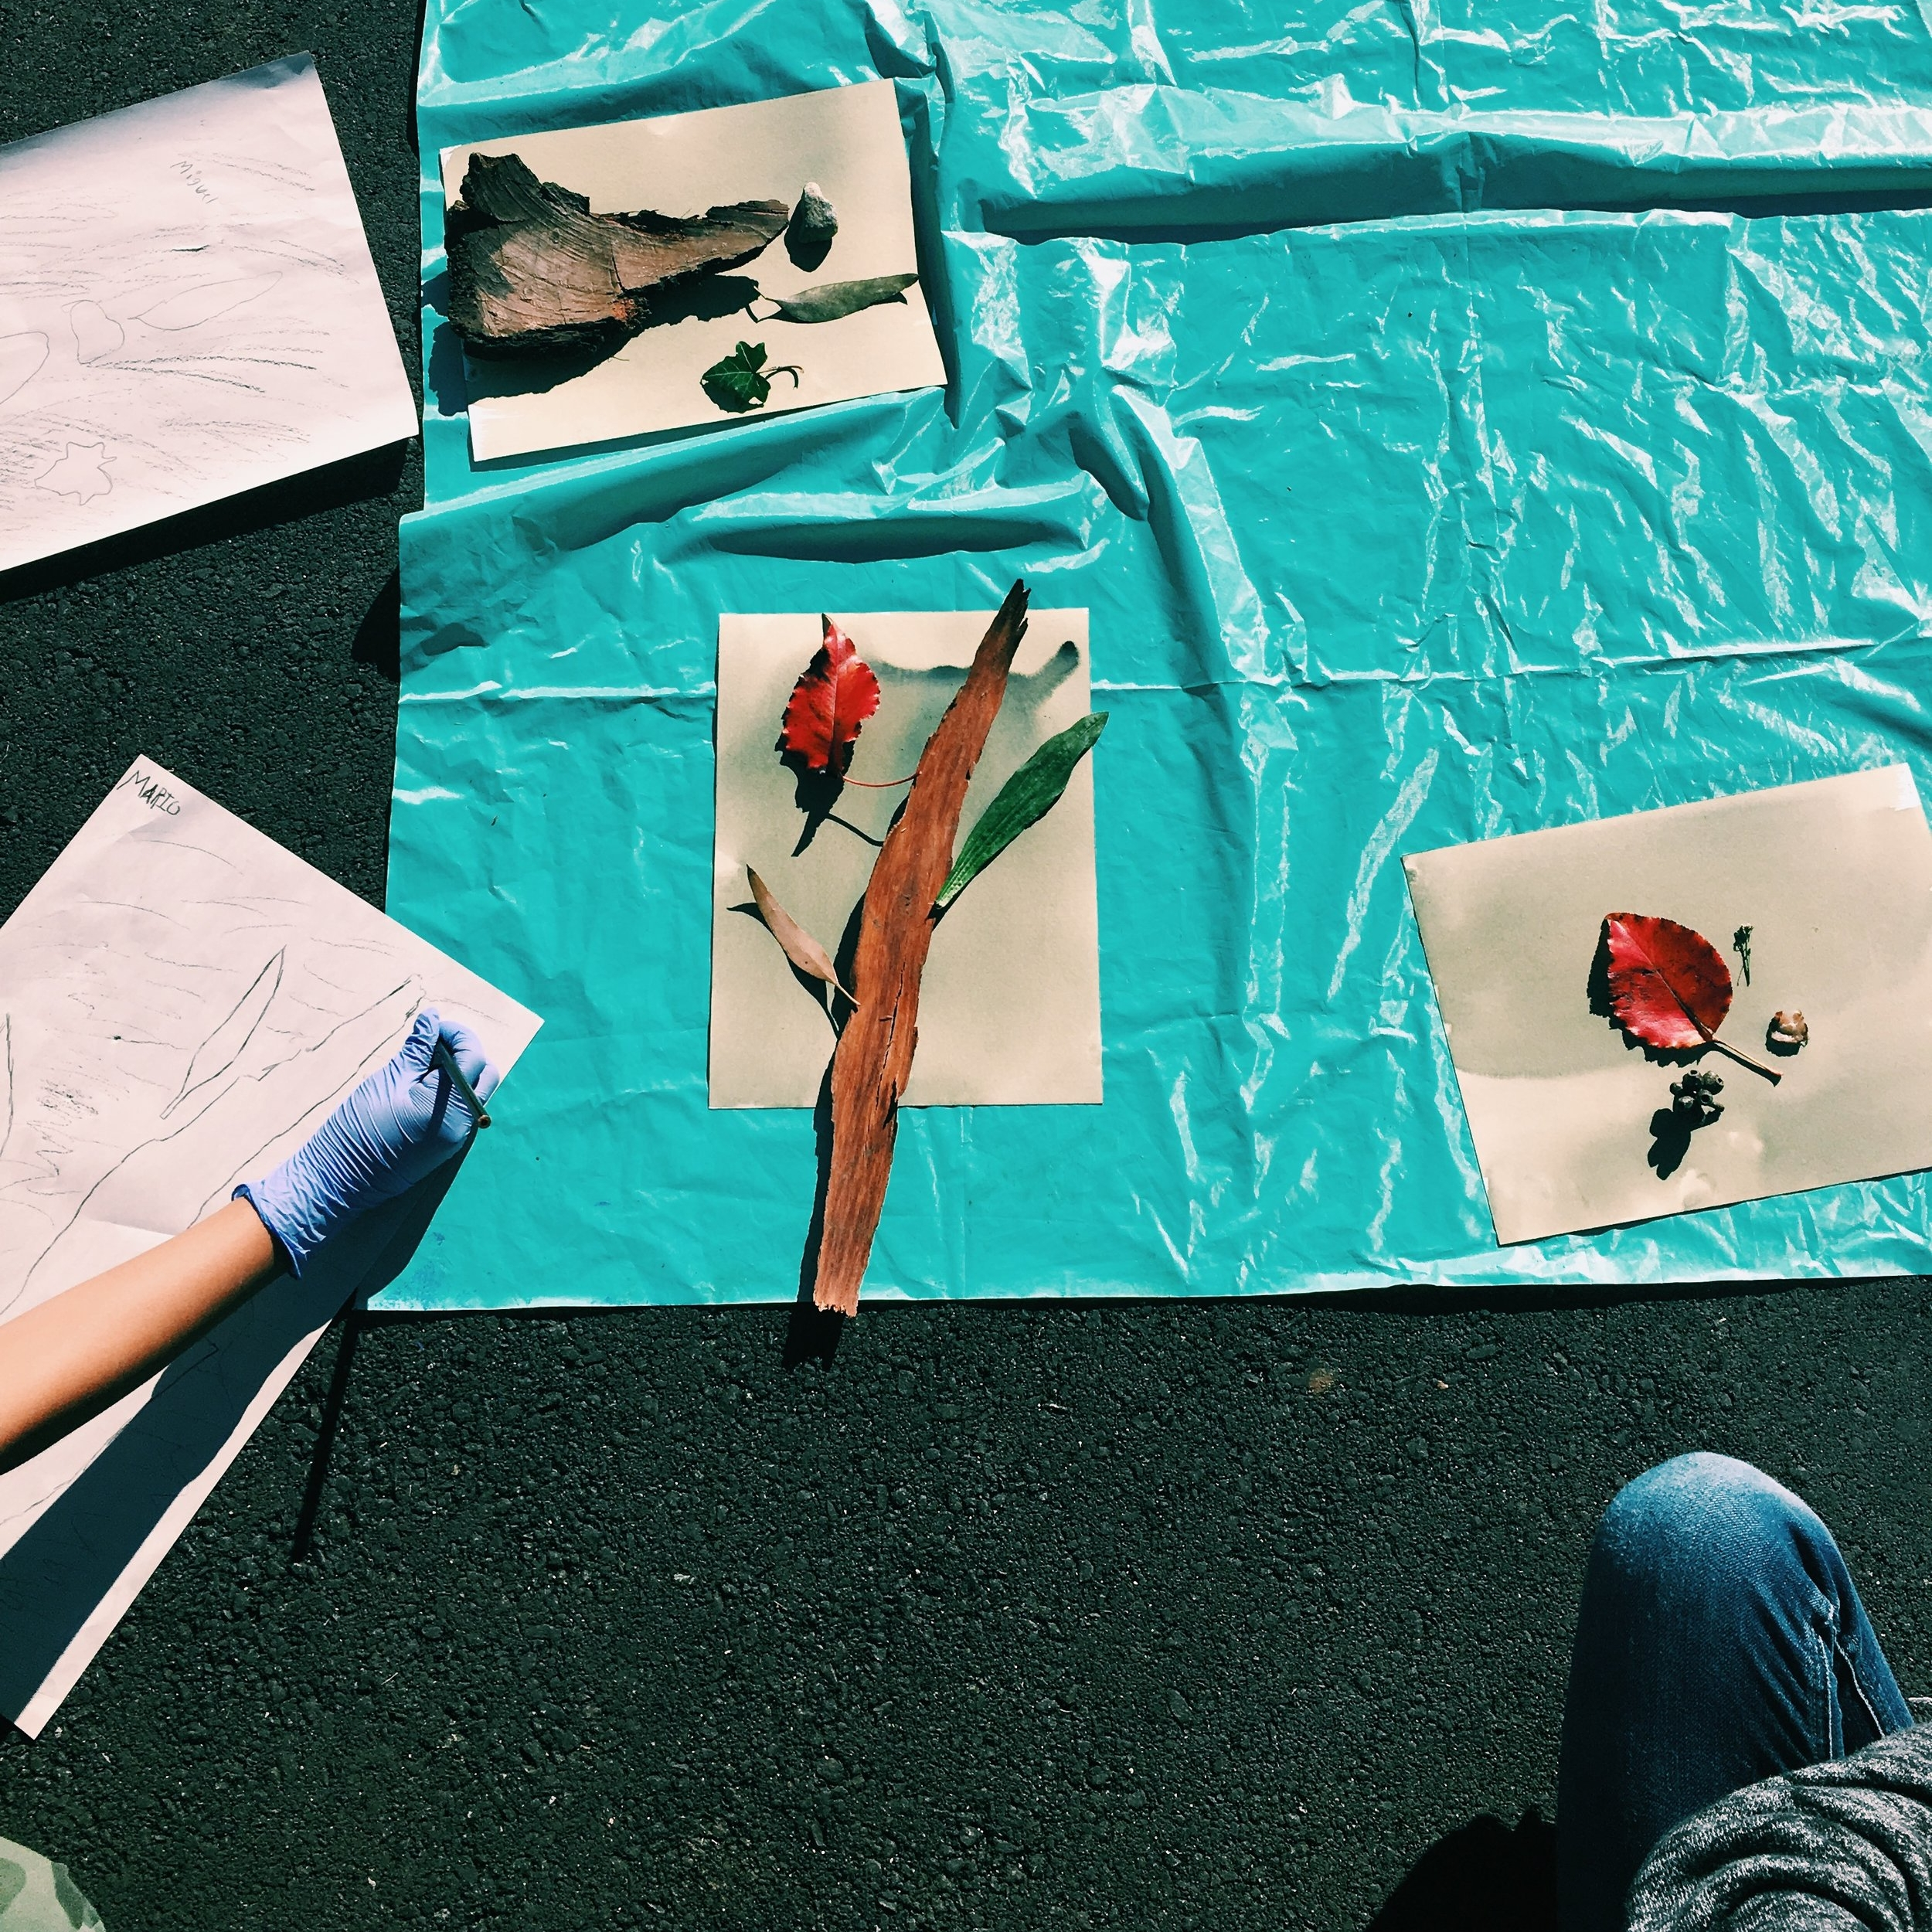 Cyanotypes from found objects